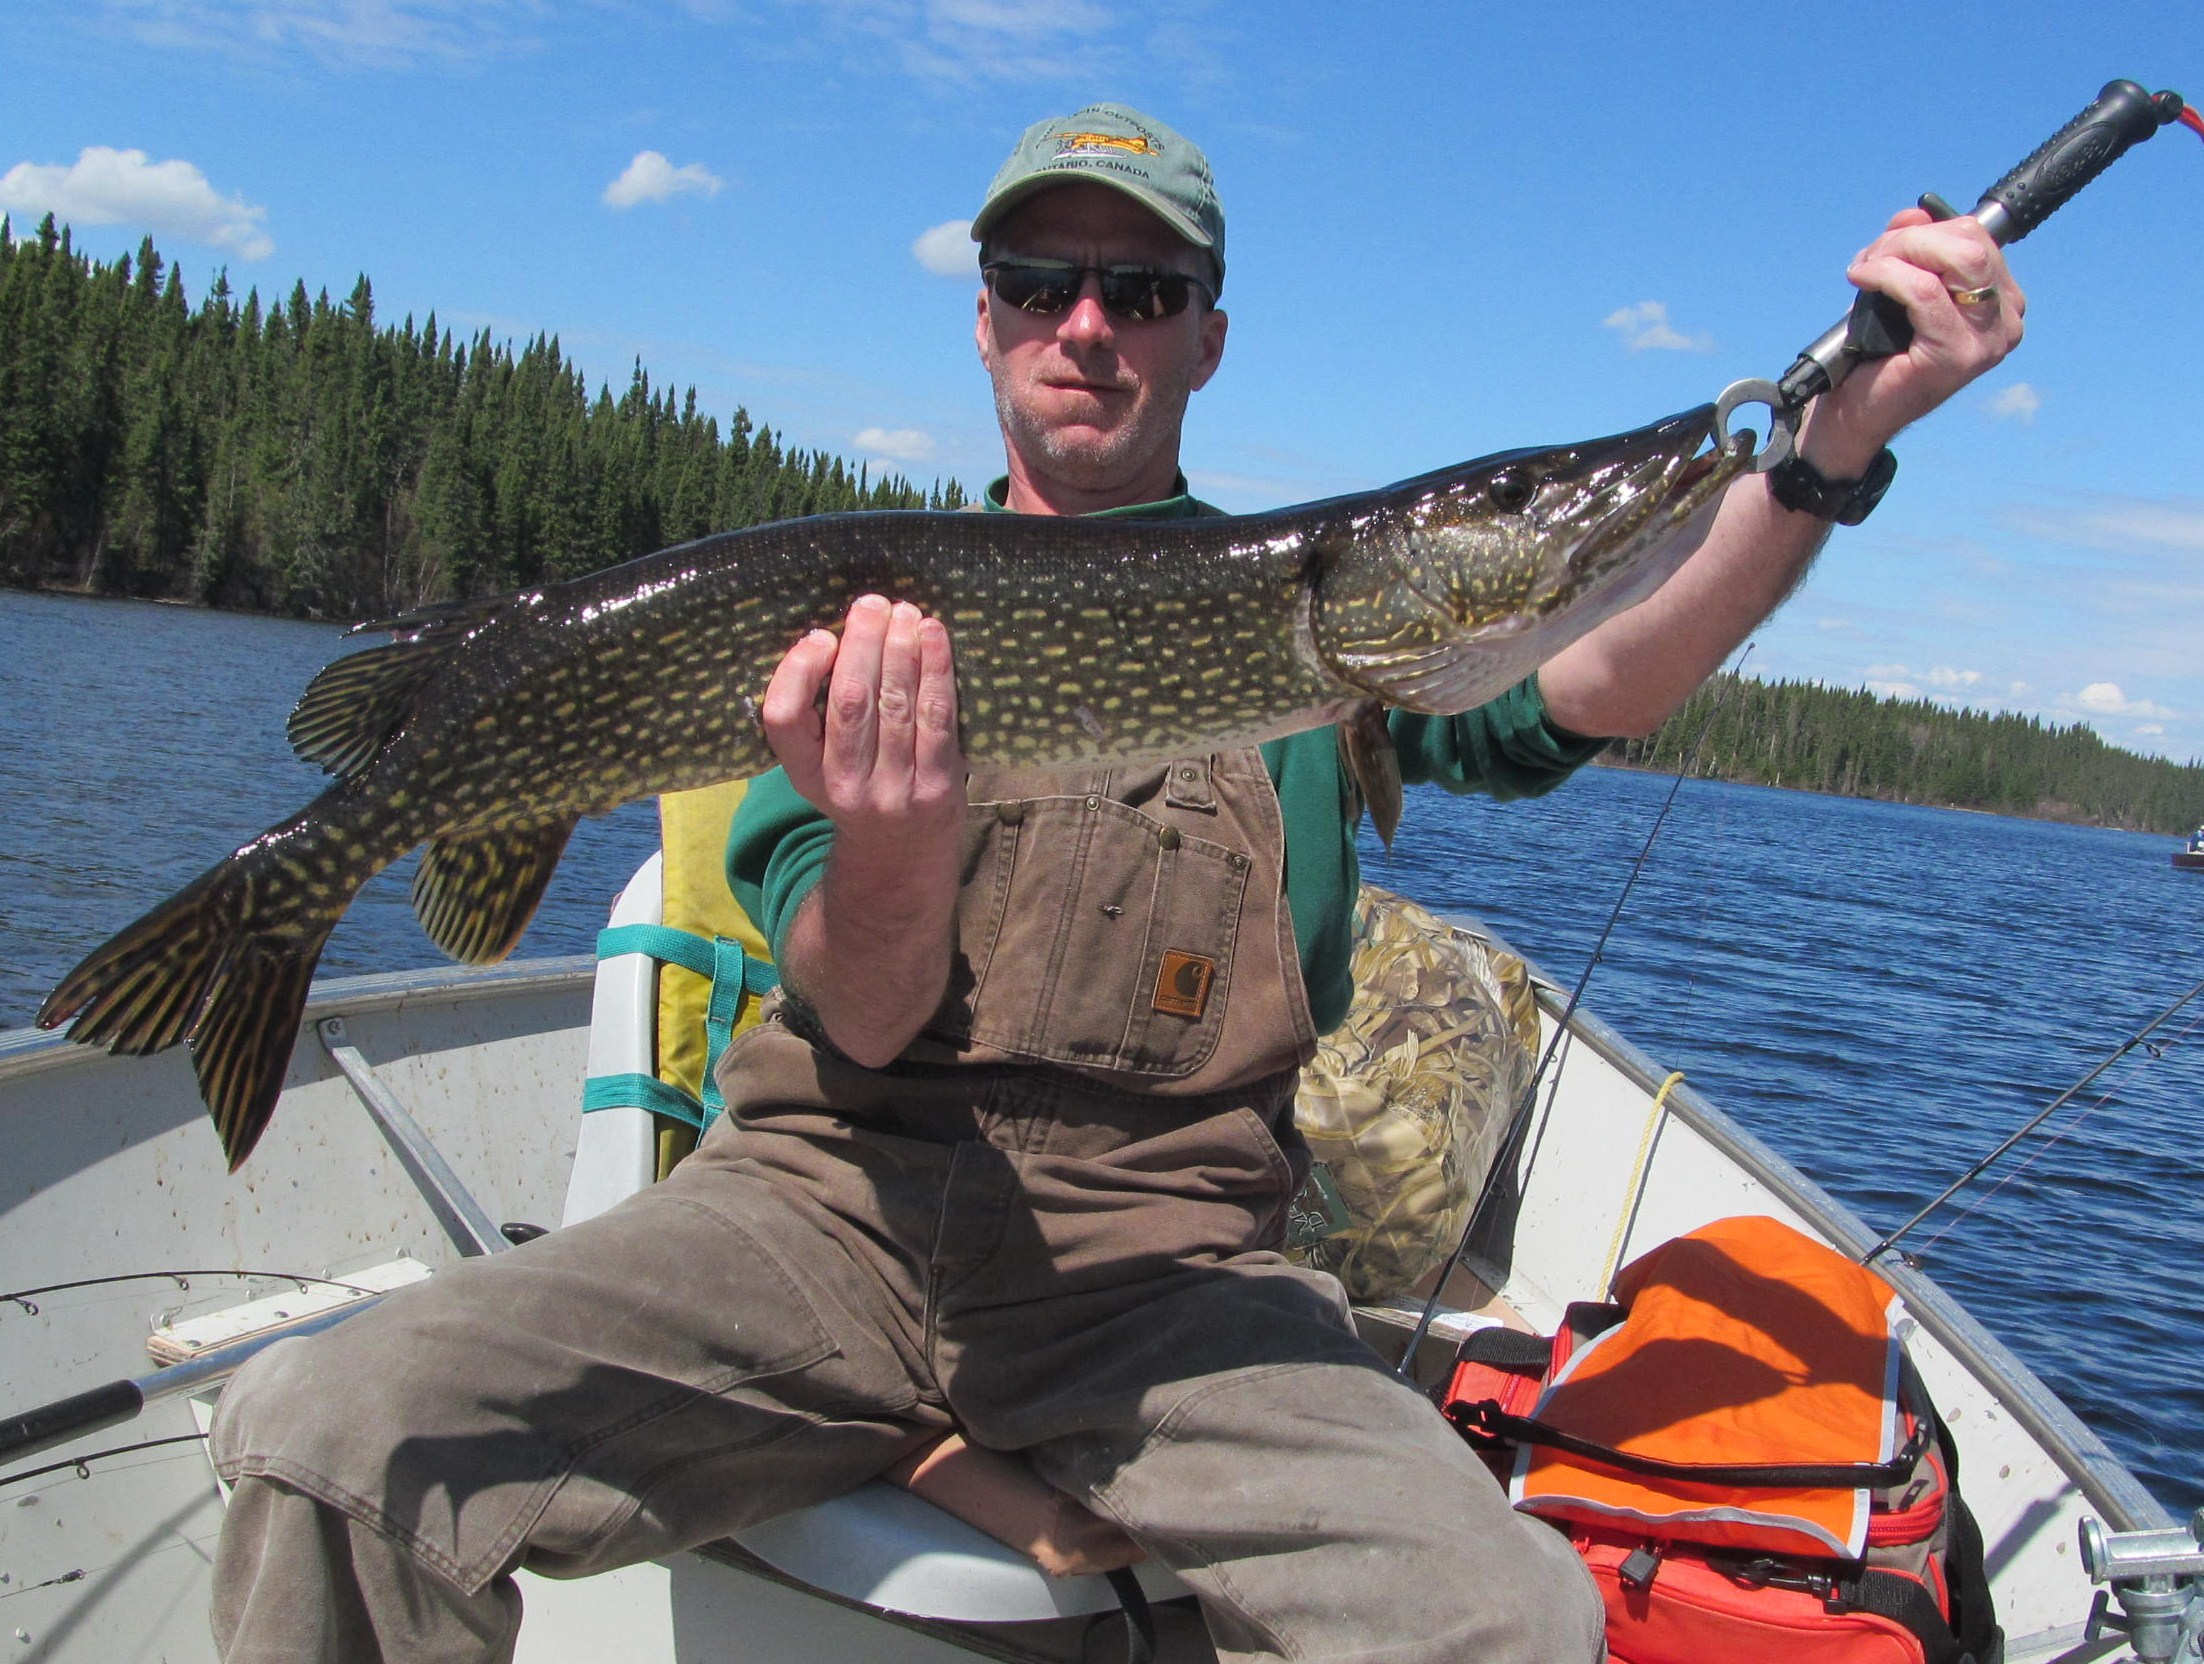 Loree lake trophy fish 2013 canadian fly in fishing for Canadian fly in fishing